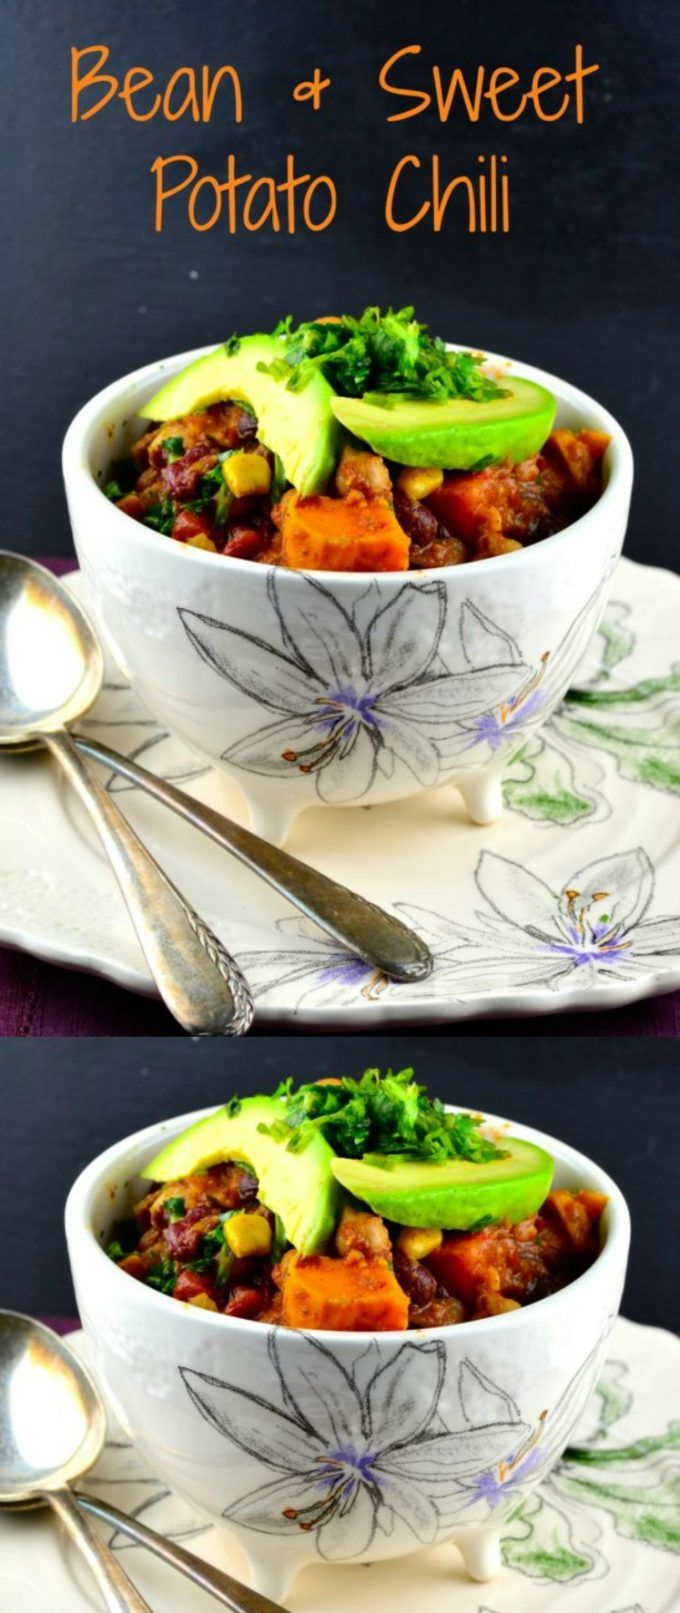 3 Bean & Sweet Potato Chili, a complete meal in one bowl, garbanzo, black and kidney beans in a flavorful sweet potato chili. Ready in less that an hour. via @ourpassion4food